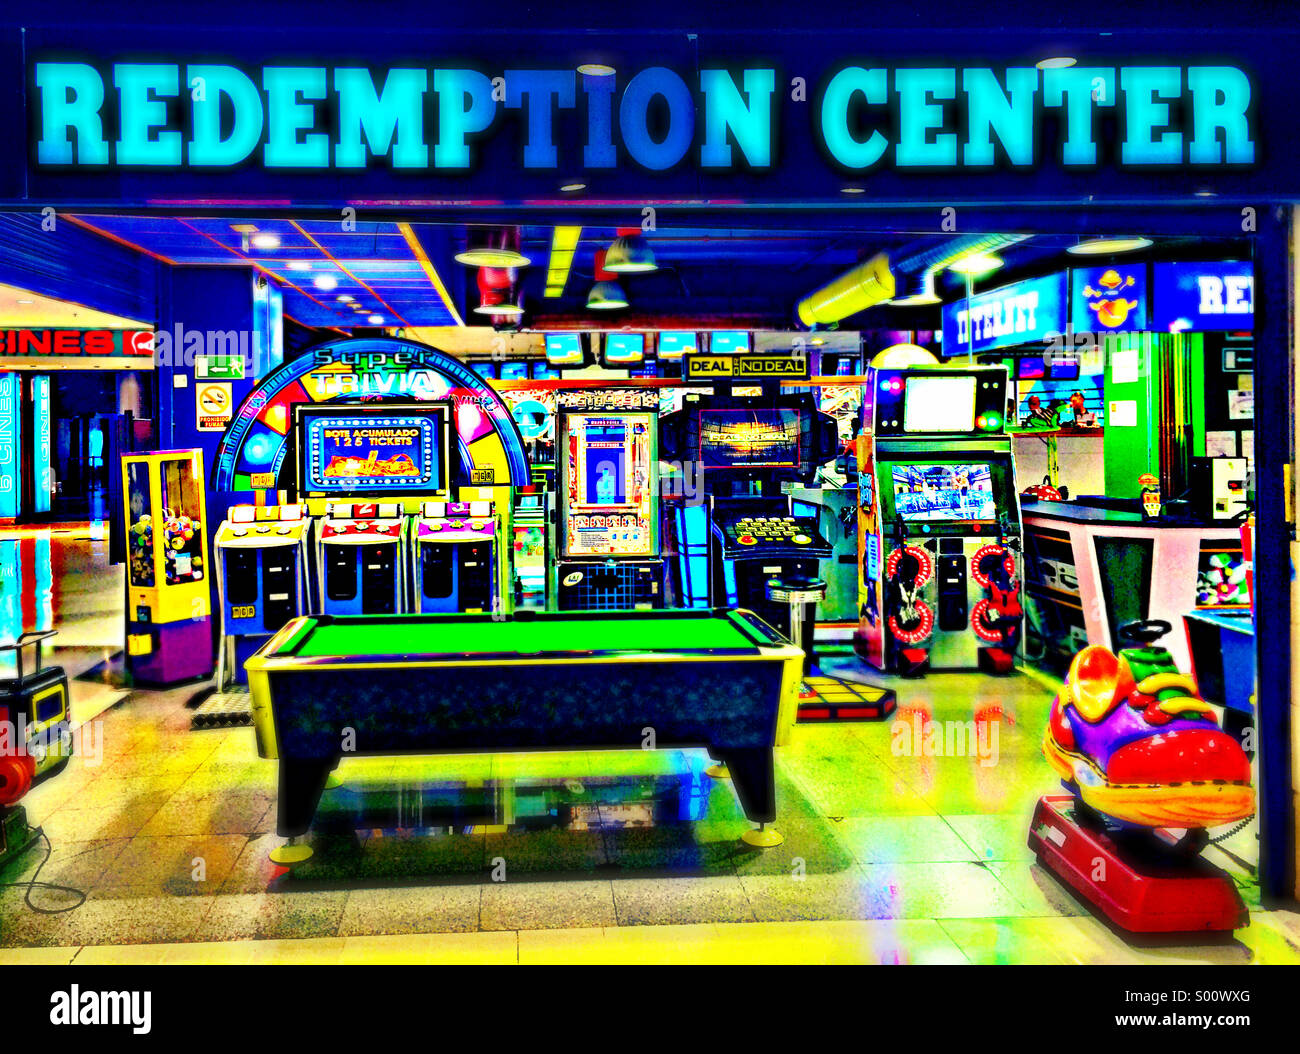 Redemption Center - a colourful but deserted amusement arcade in the Canaries - Stock Image